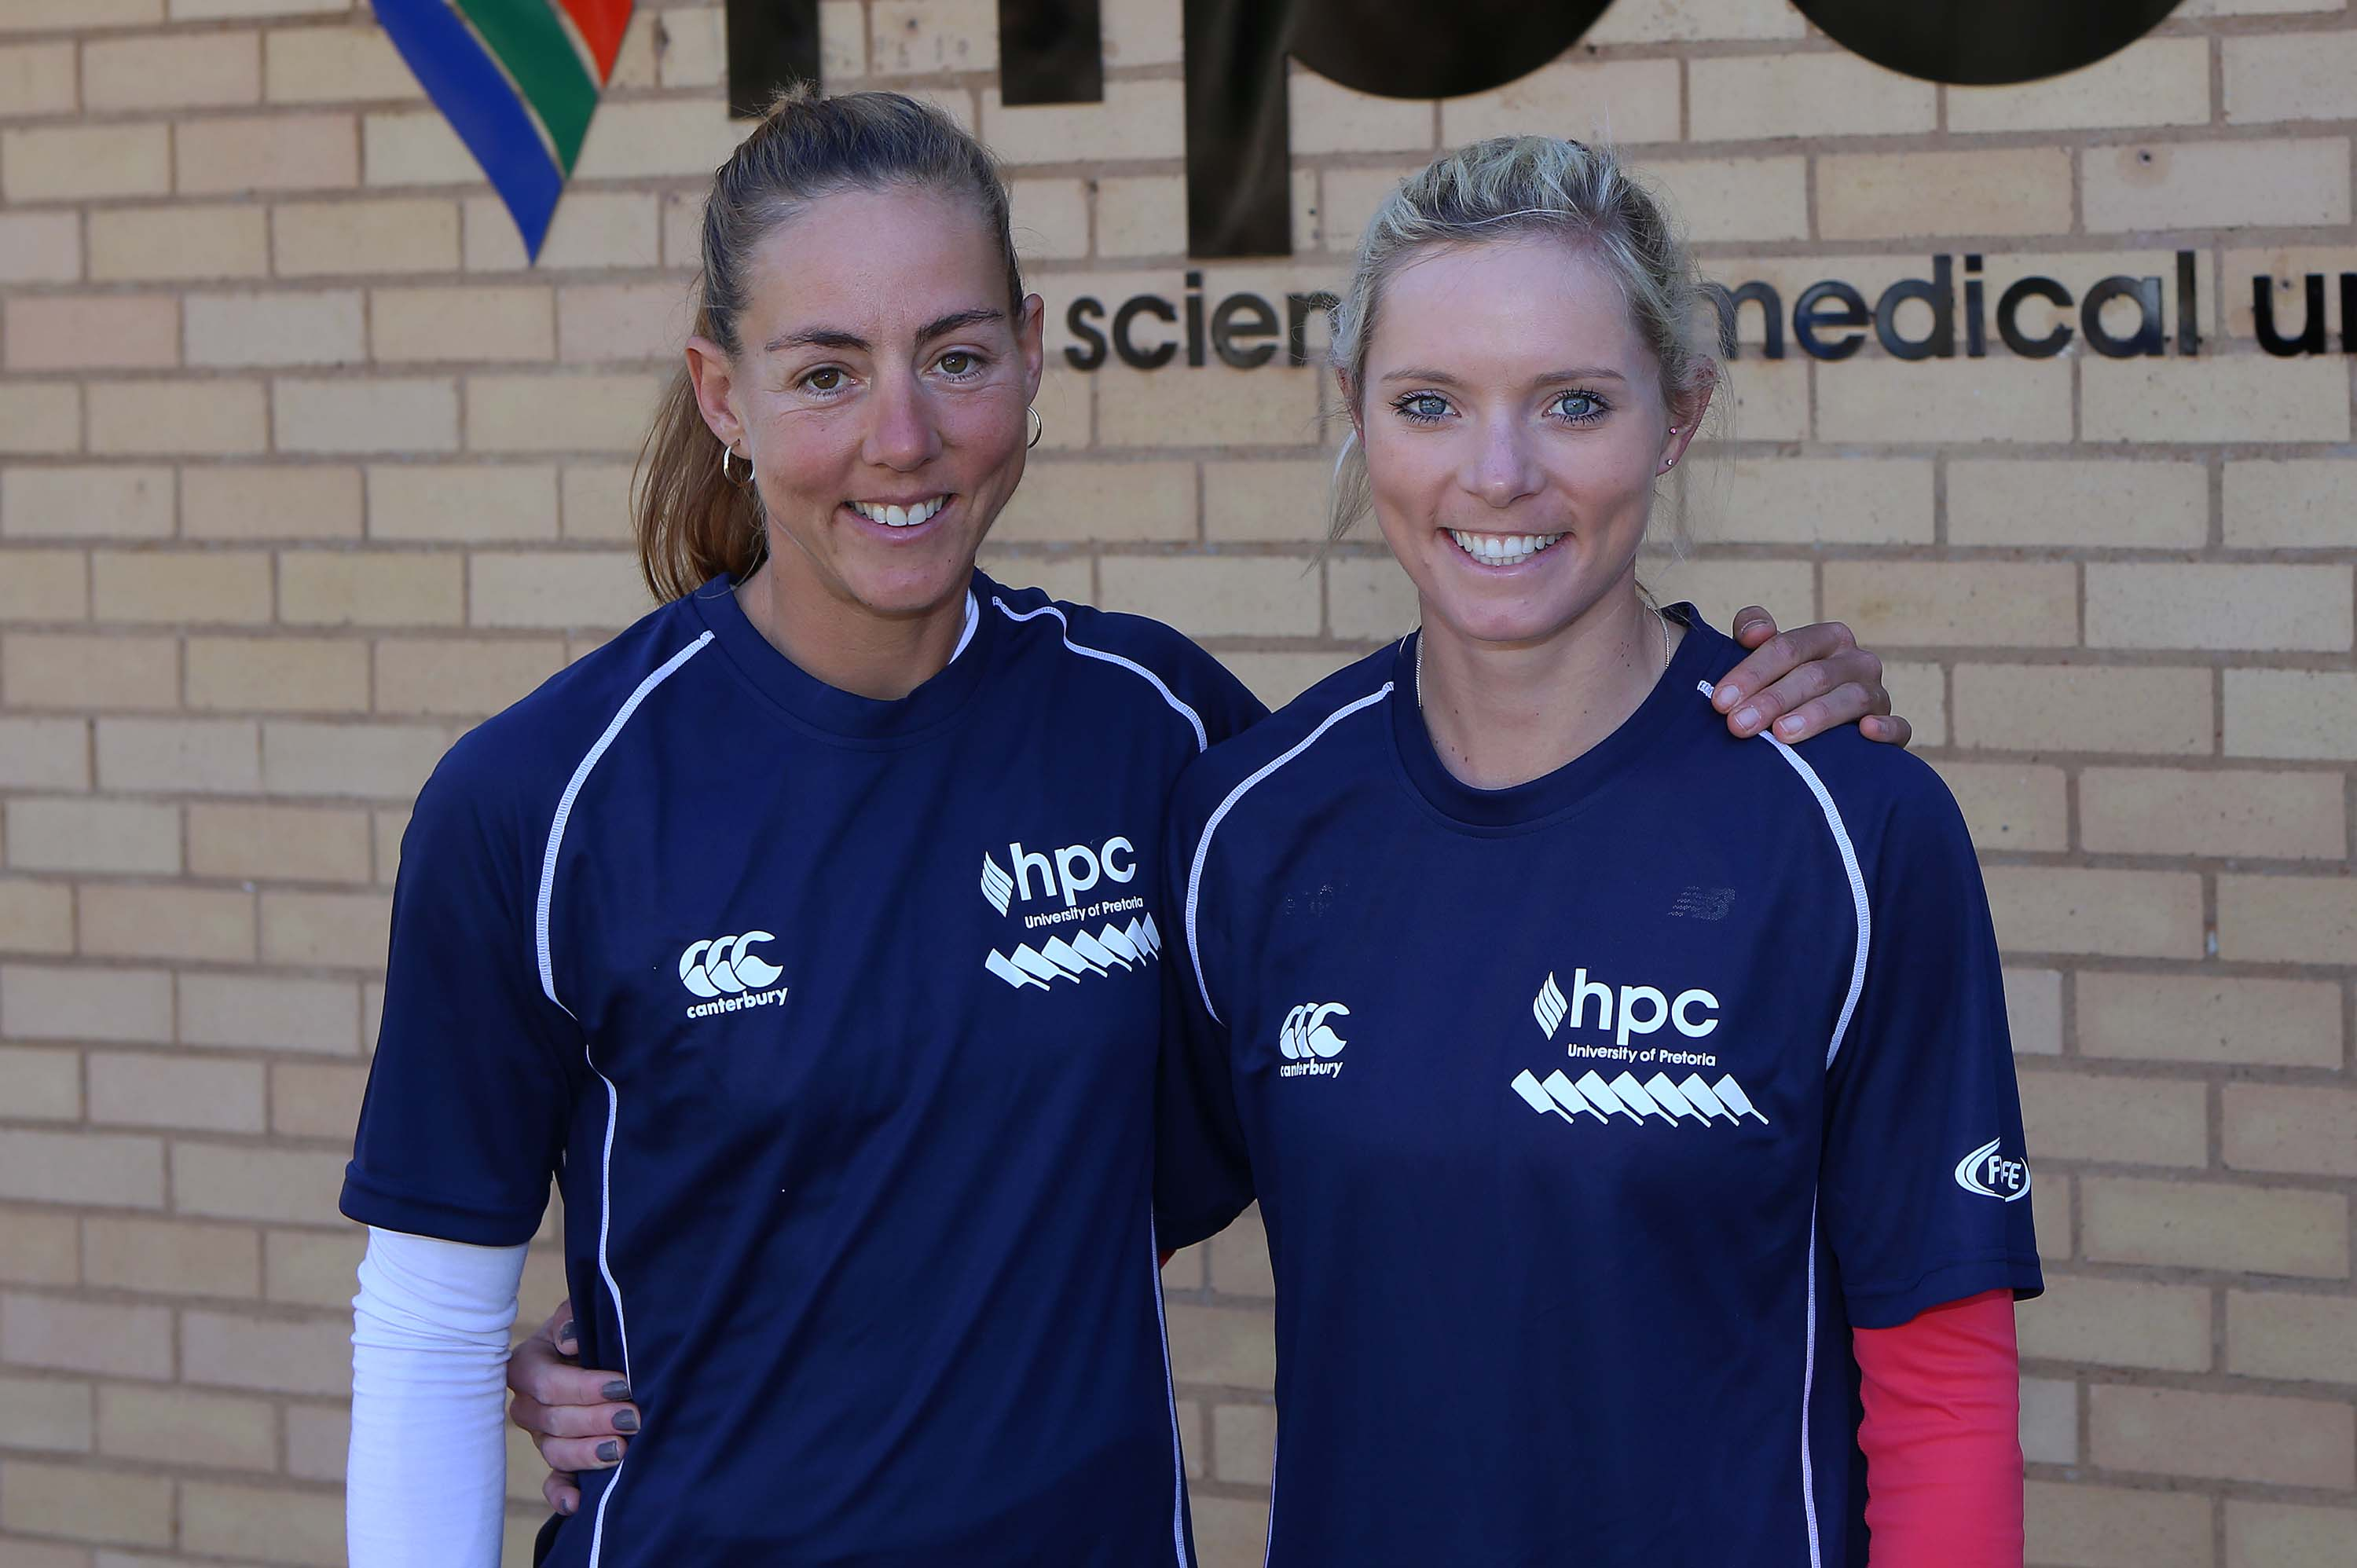 McCann and Grobler make history with medal at Worlds